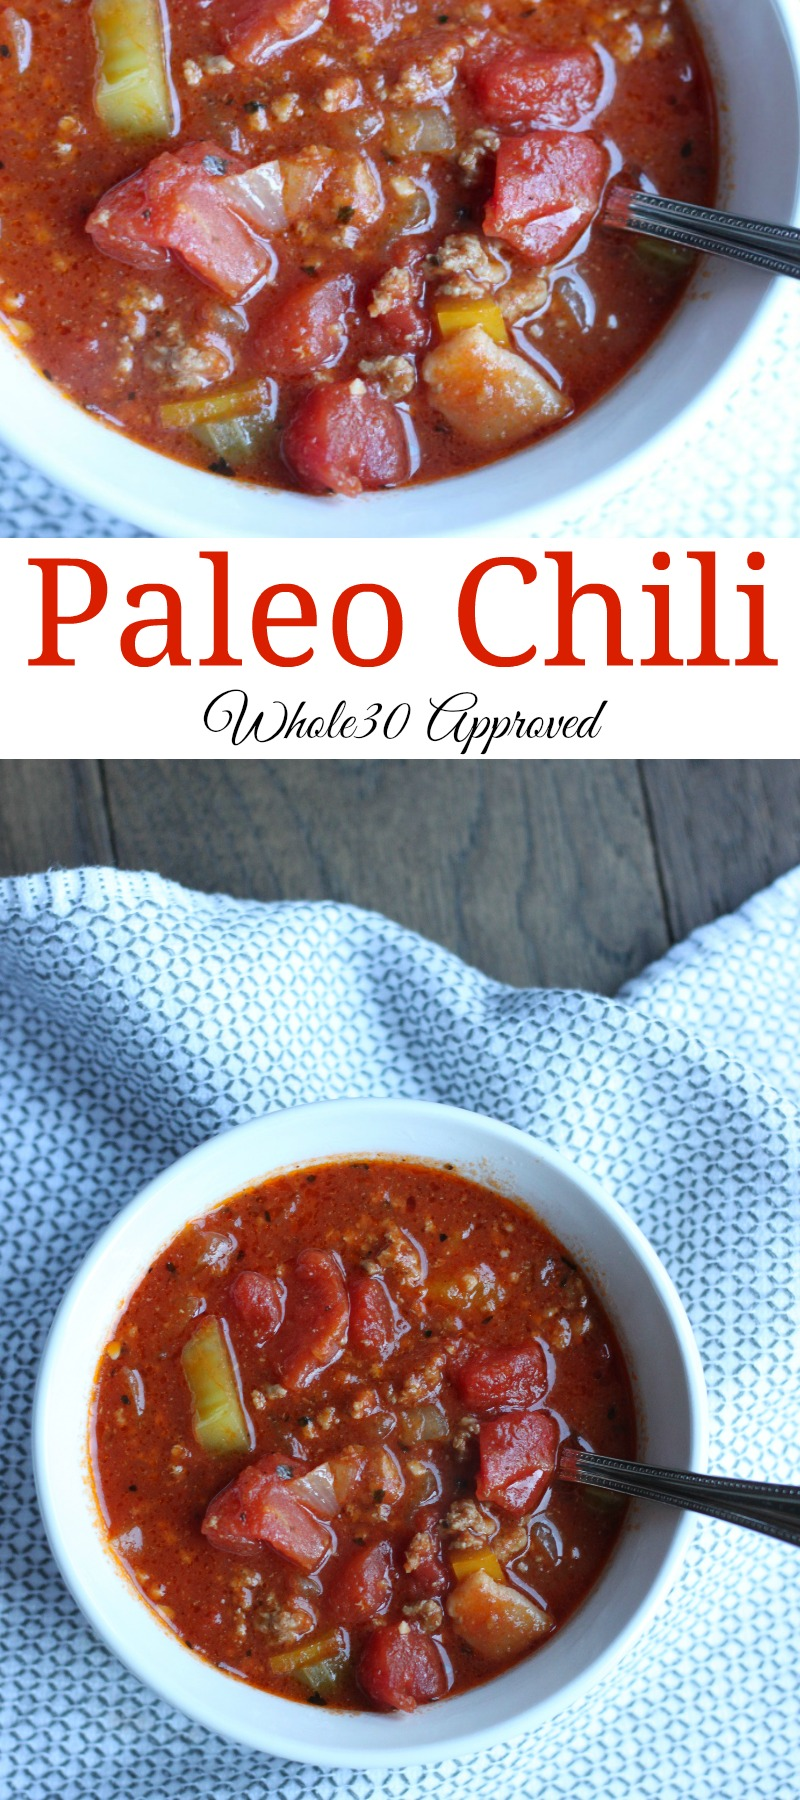 This paleo chili recipe will have you begging for seconds.